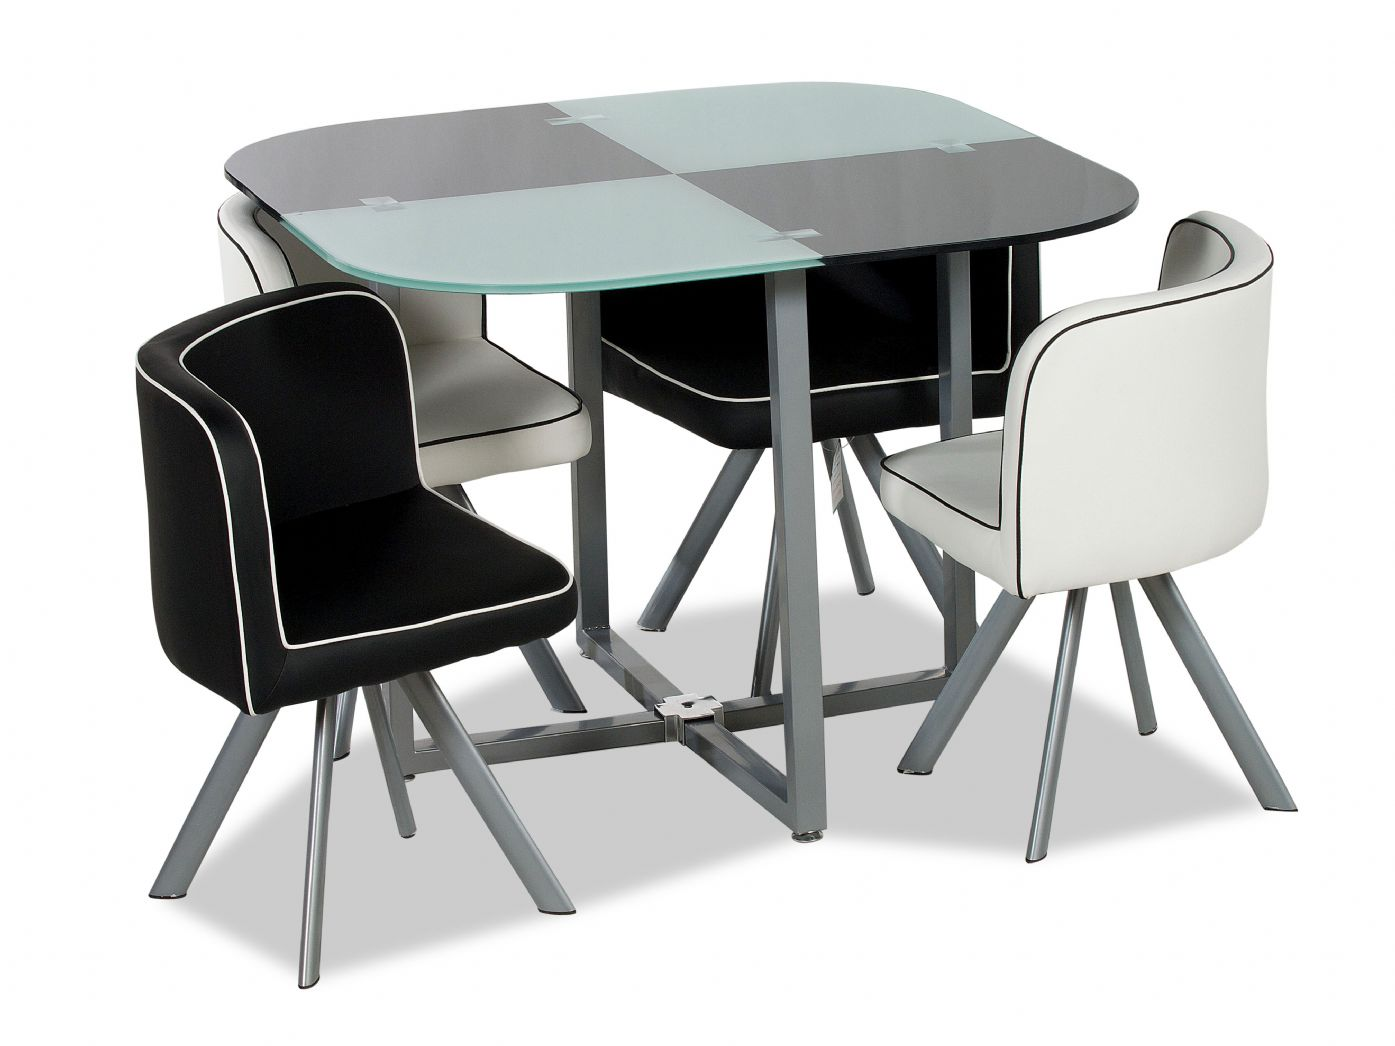 Battenberg Glass Dining Table and Four Chairs Set : battenberg glass dining table and four chairs set 4643 p from store.sleepsolutionsuk.com size 1395 x 1046 jpeg 101kB